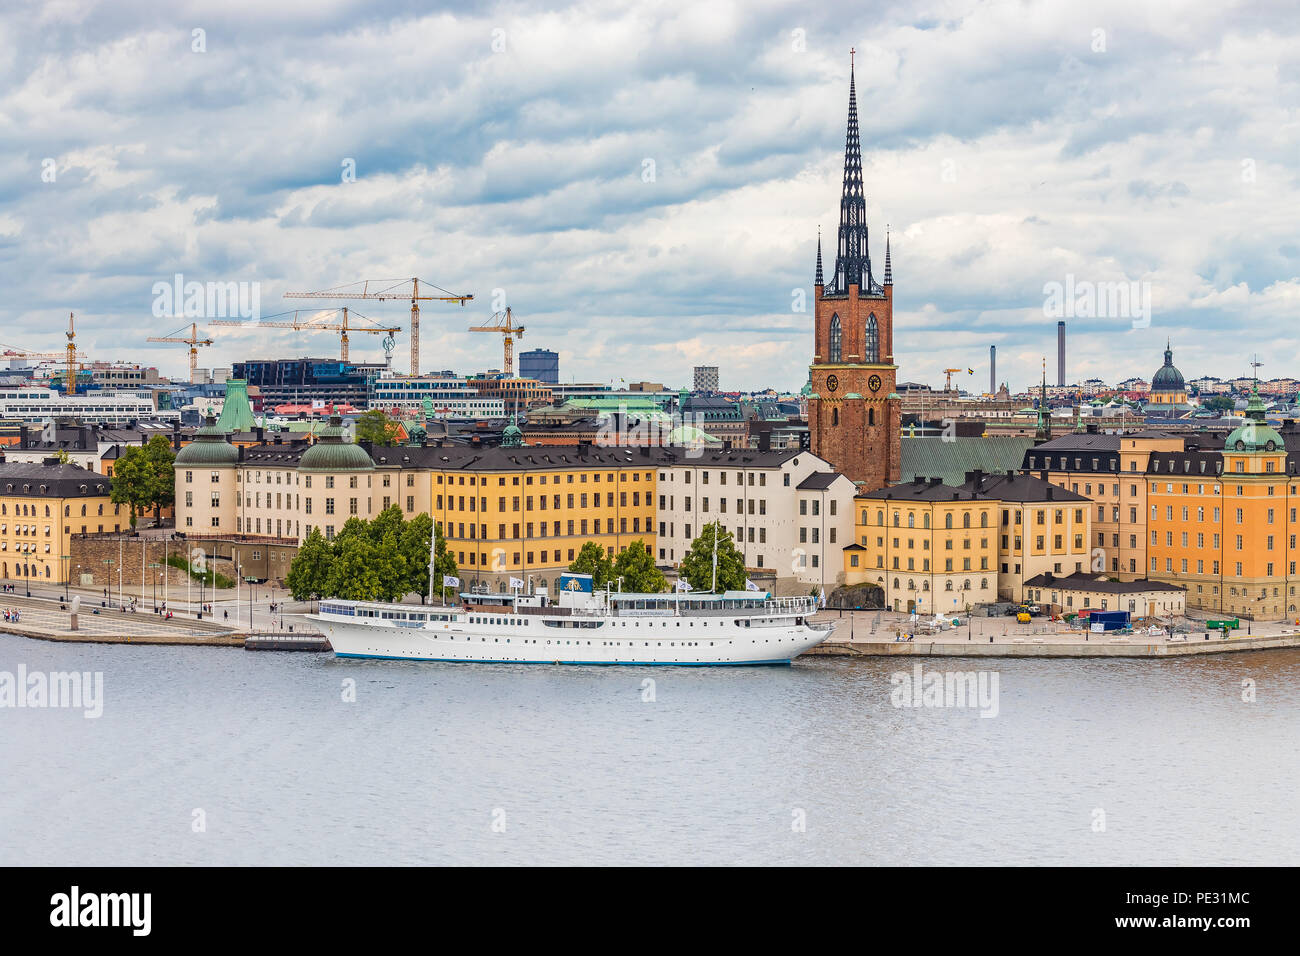 Stockholm, Sweden - August 10, 2017:  View onto Riddarholmen island and Riddarholmen church, the burial church of Swedish monarchs, in old town Gamla  - Stock Image